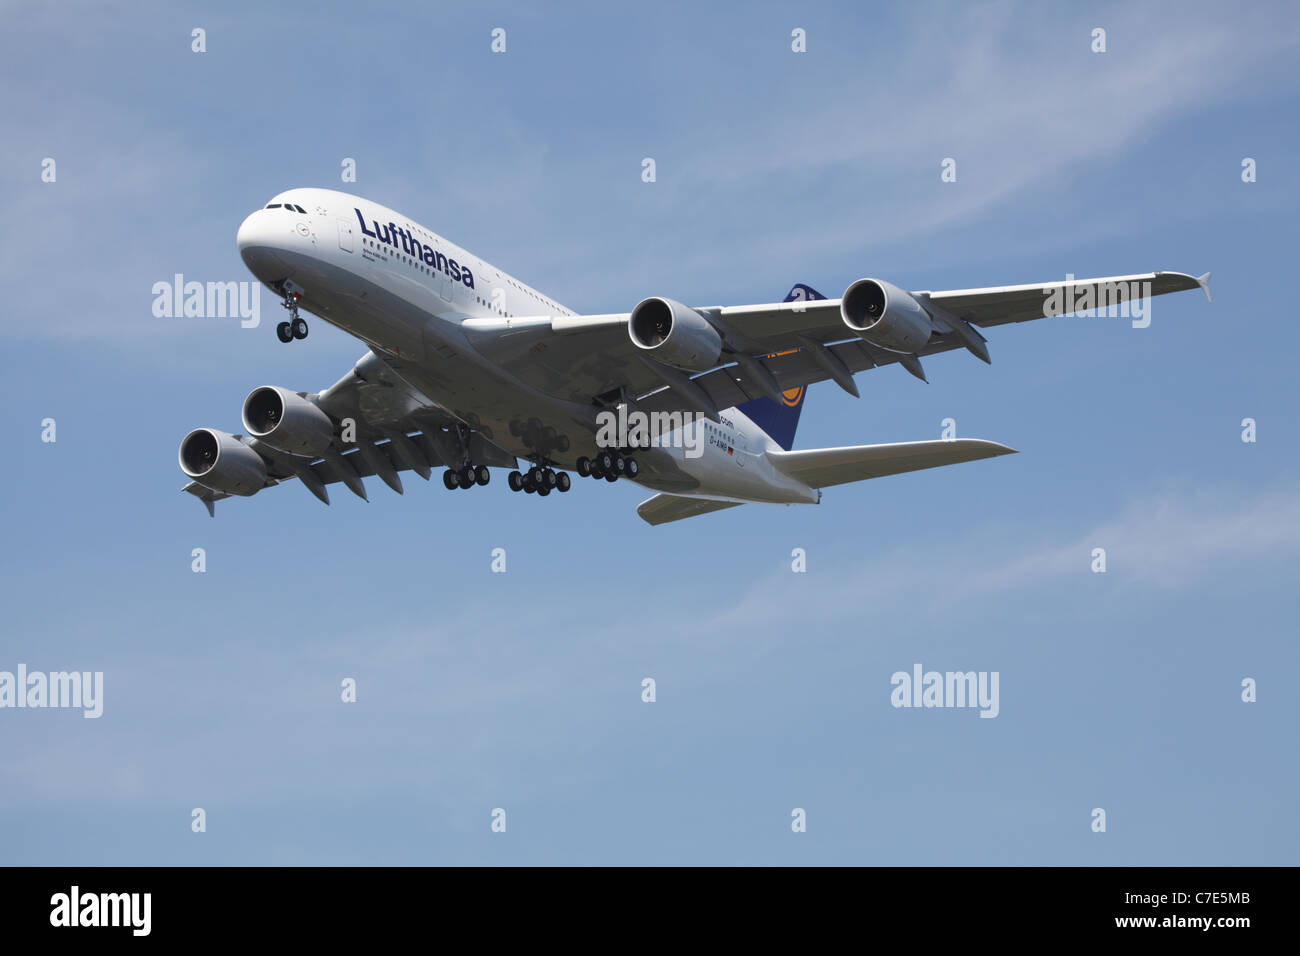 Airbus A380 Lufthansa coming into land - Stock Image